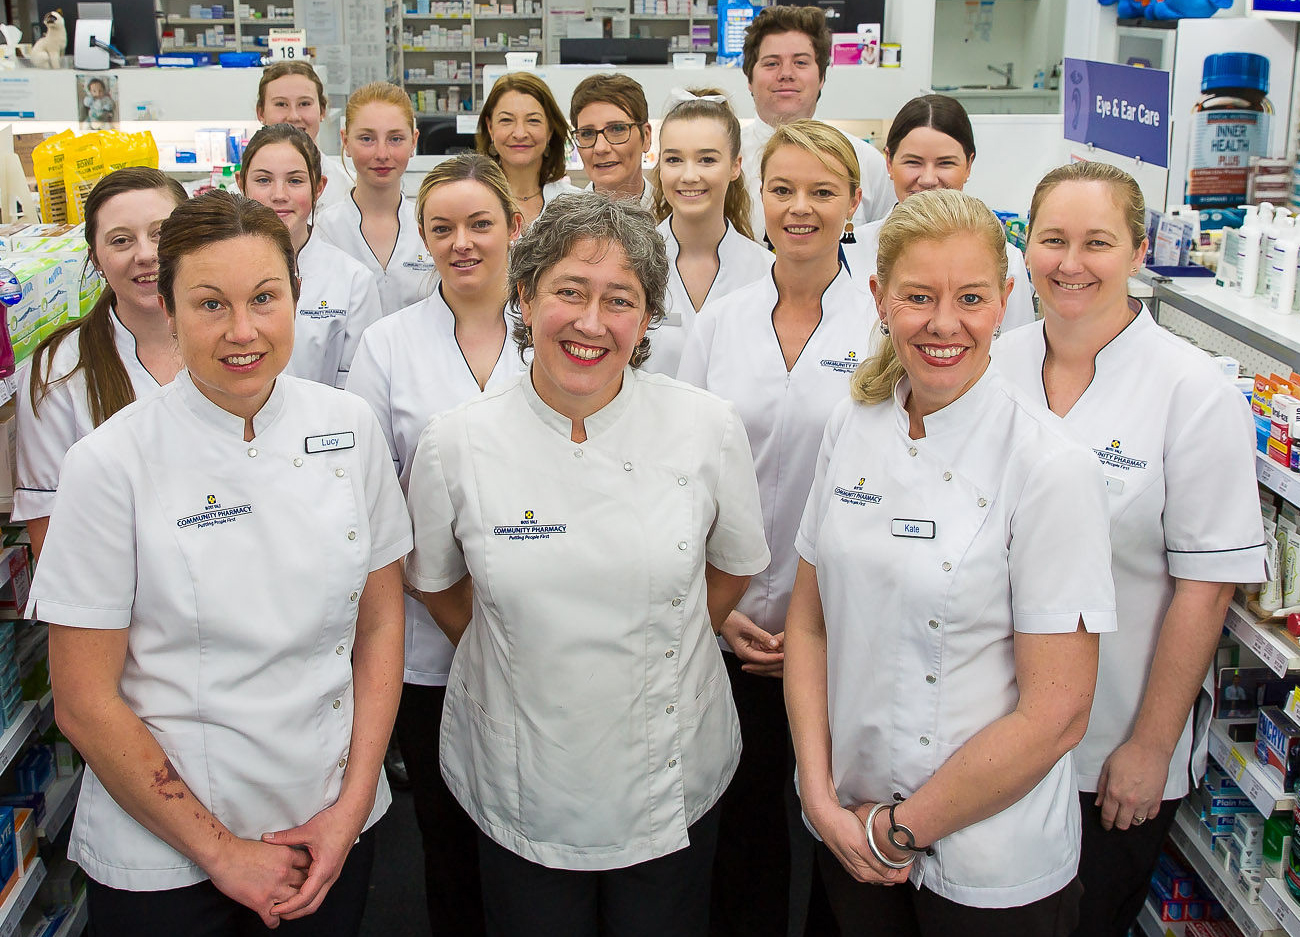 Case Study Moss Vale Pharmacy Installs Countertop Workplace Protection Screen To Keep Staff Safe from COVID-19